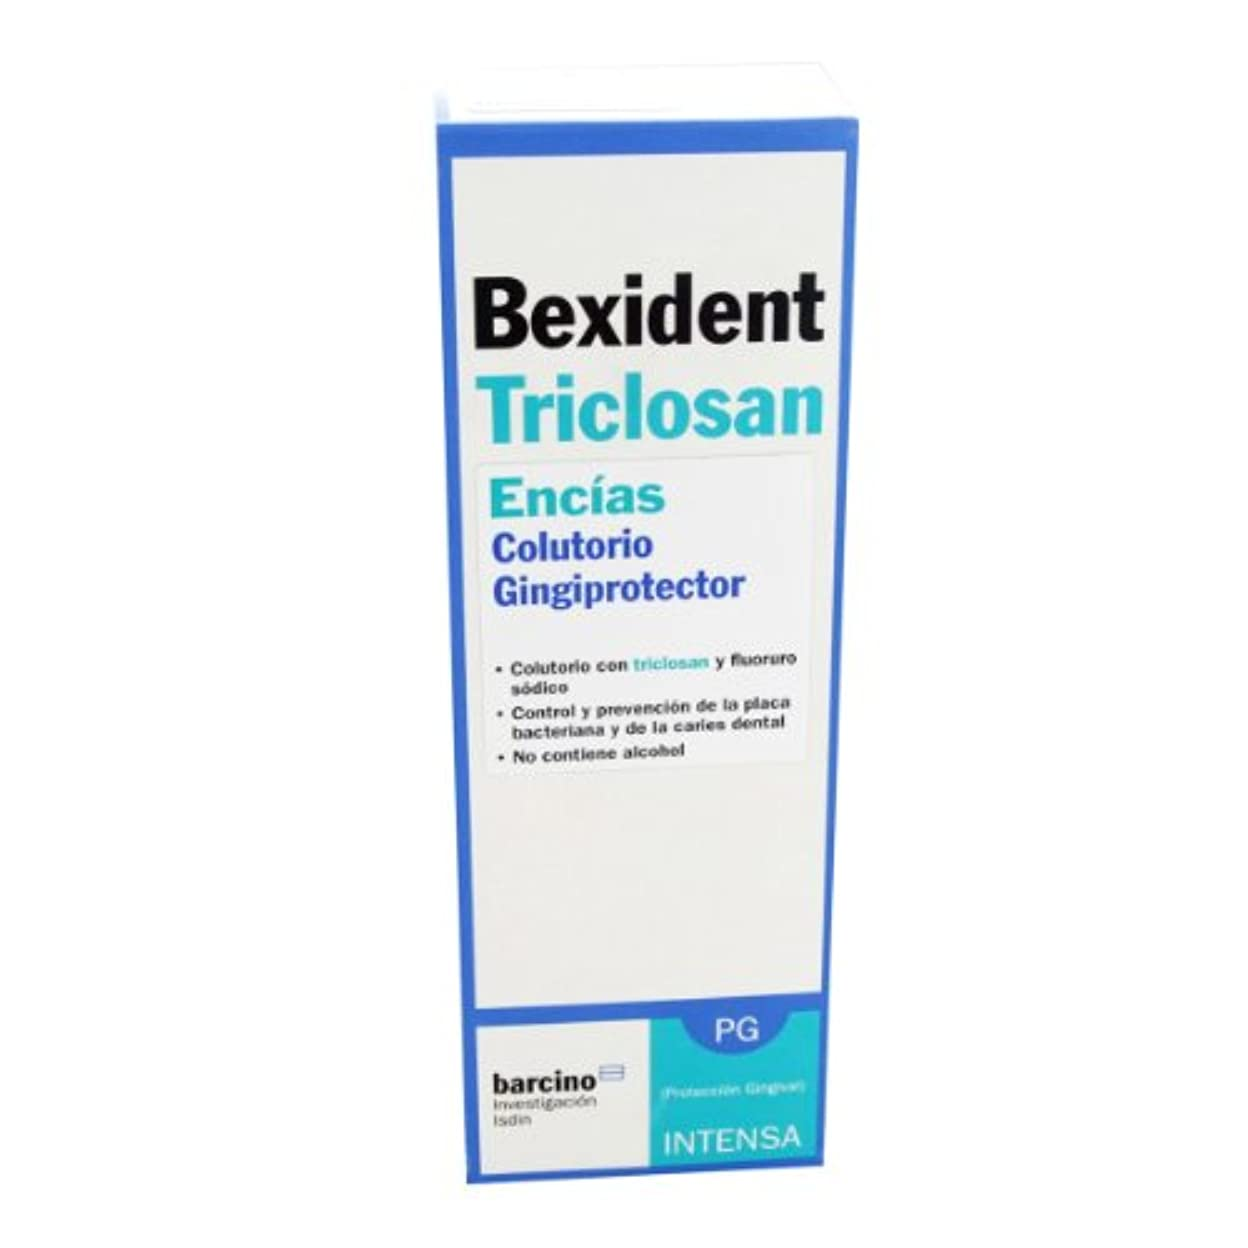 バルブ専制縞模様のBexident Gum Maintenance Triclosan Mouthwash 250ml [並行輸入品]